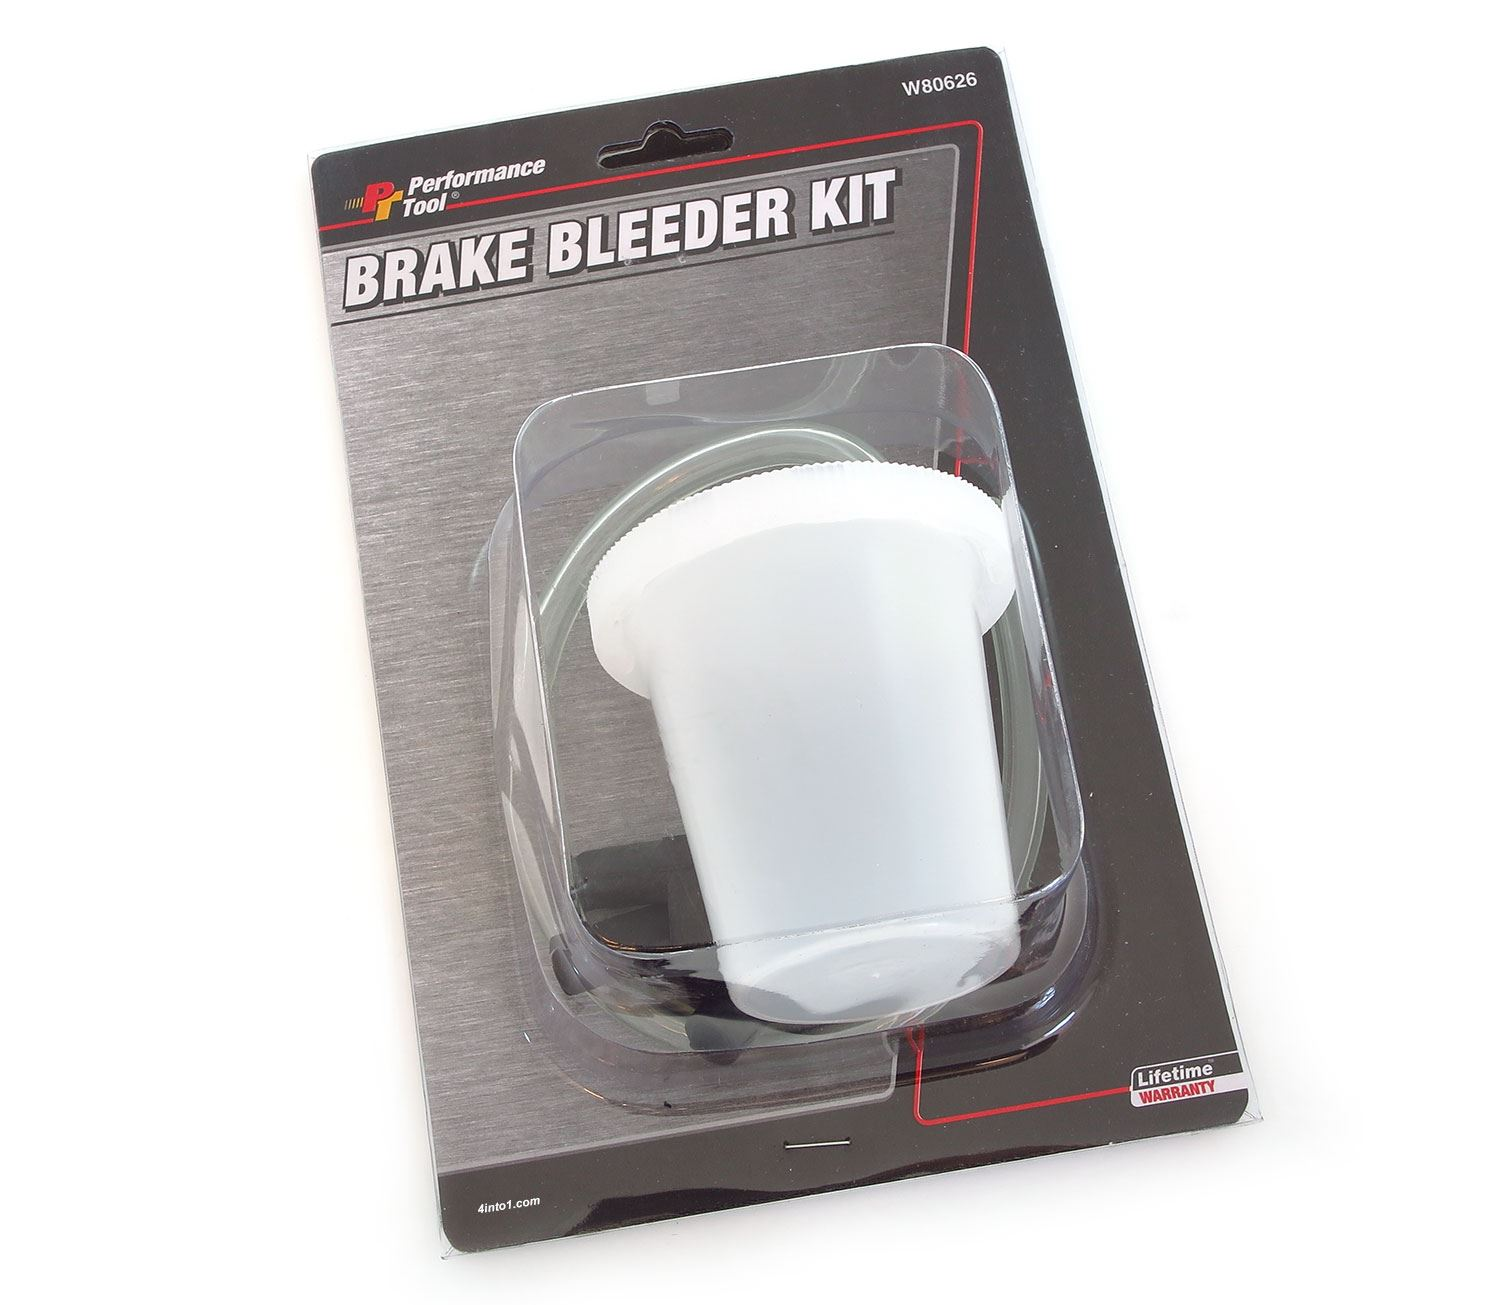 self brake bleeder kit 3 adapters performance tool w80686 ebay. Black Bedroom Furniture Sets. Home Design Ideas